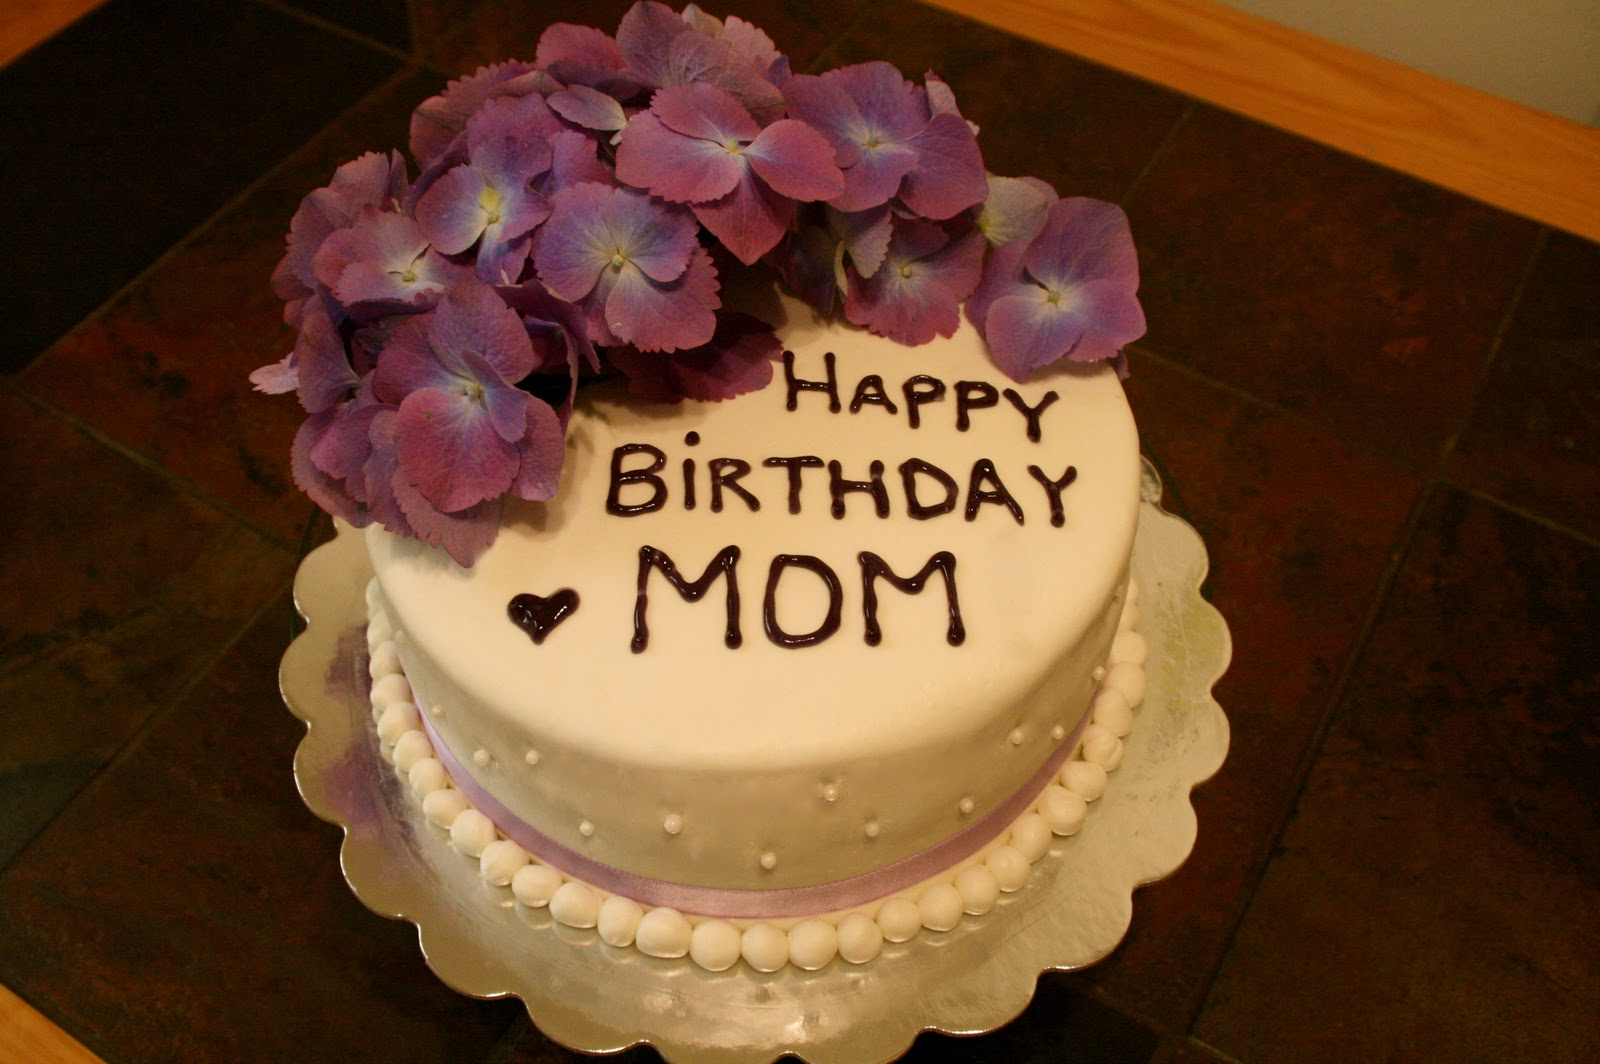 10 summer happy birthday mom cakes photo happy birthday mom cake